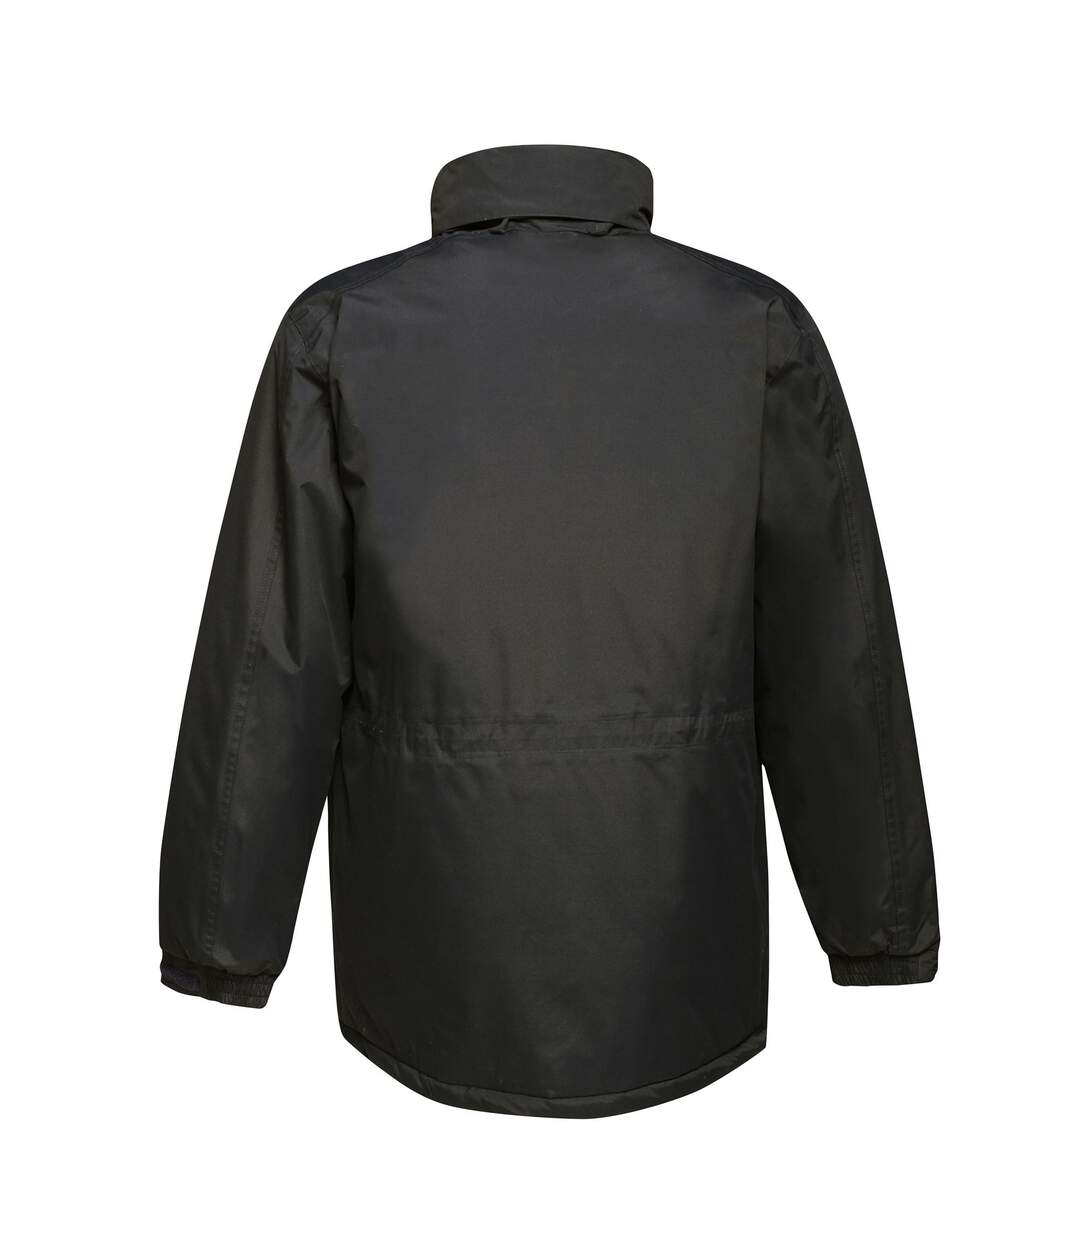 Regatta Mens Darby III Insulated Jacket (Black) - UTRG3578